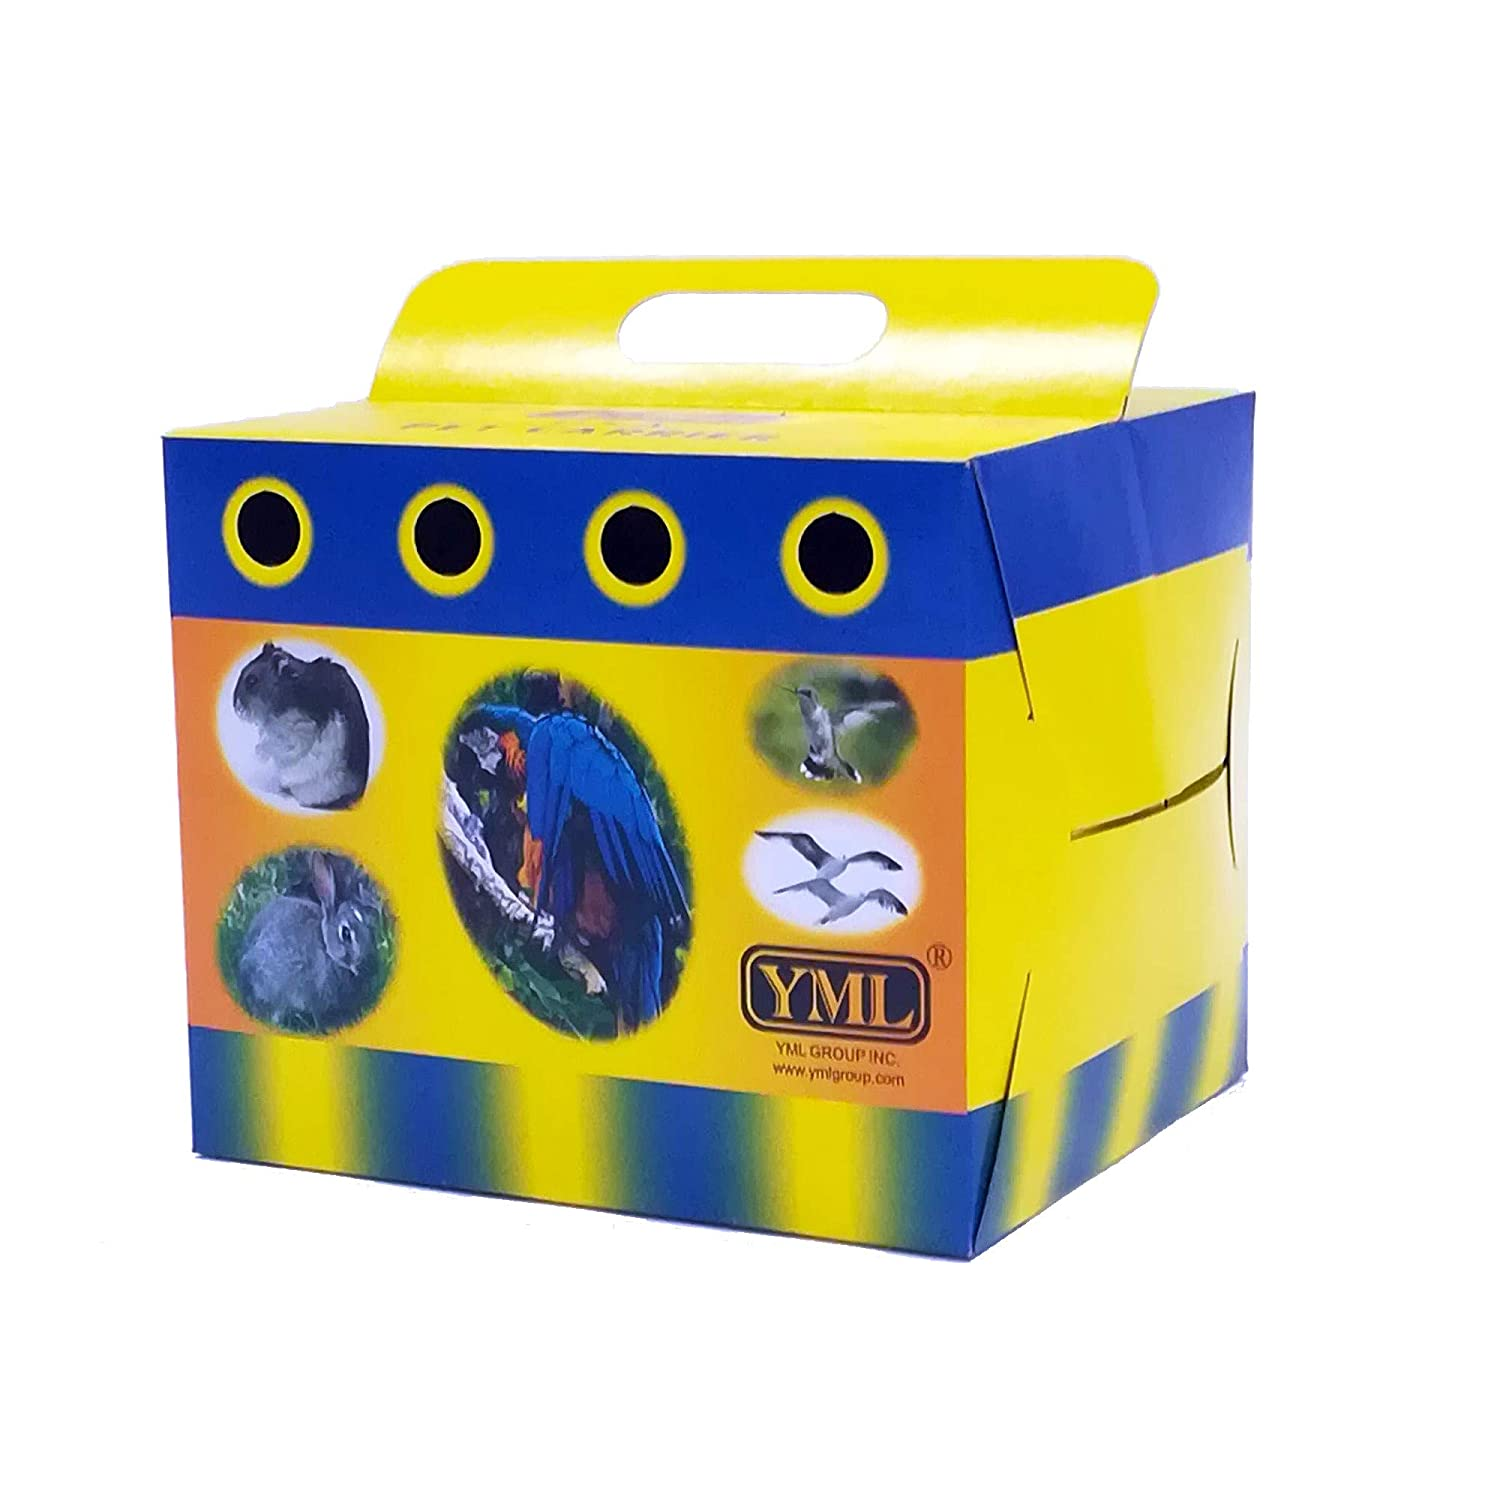 YML Cardboard Carrier for Small Animals or Birds, Medium, Lot of 100 YML GROUP INC 8102